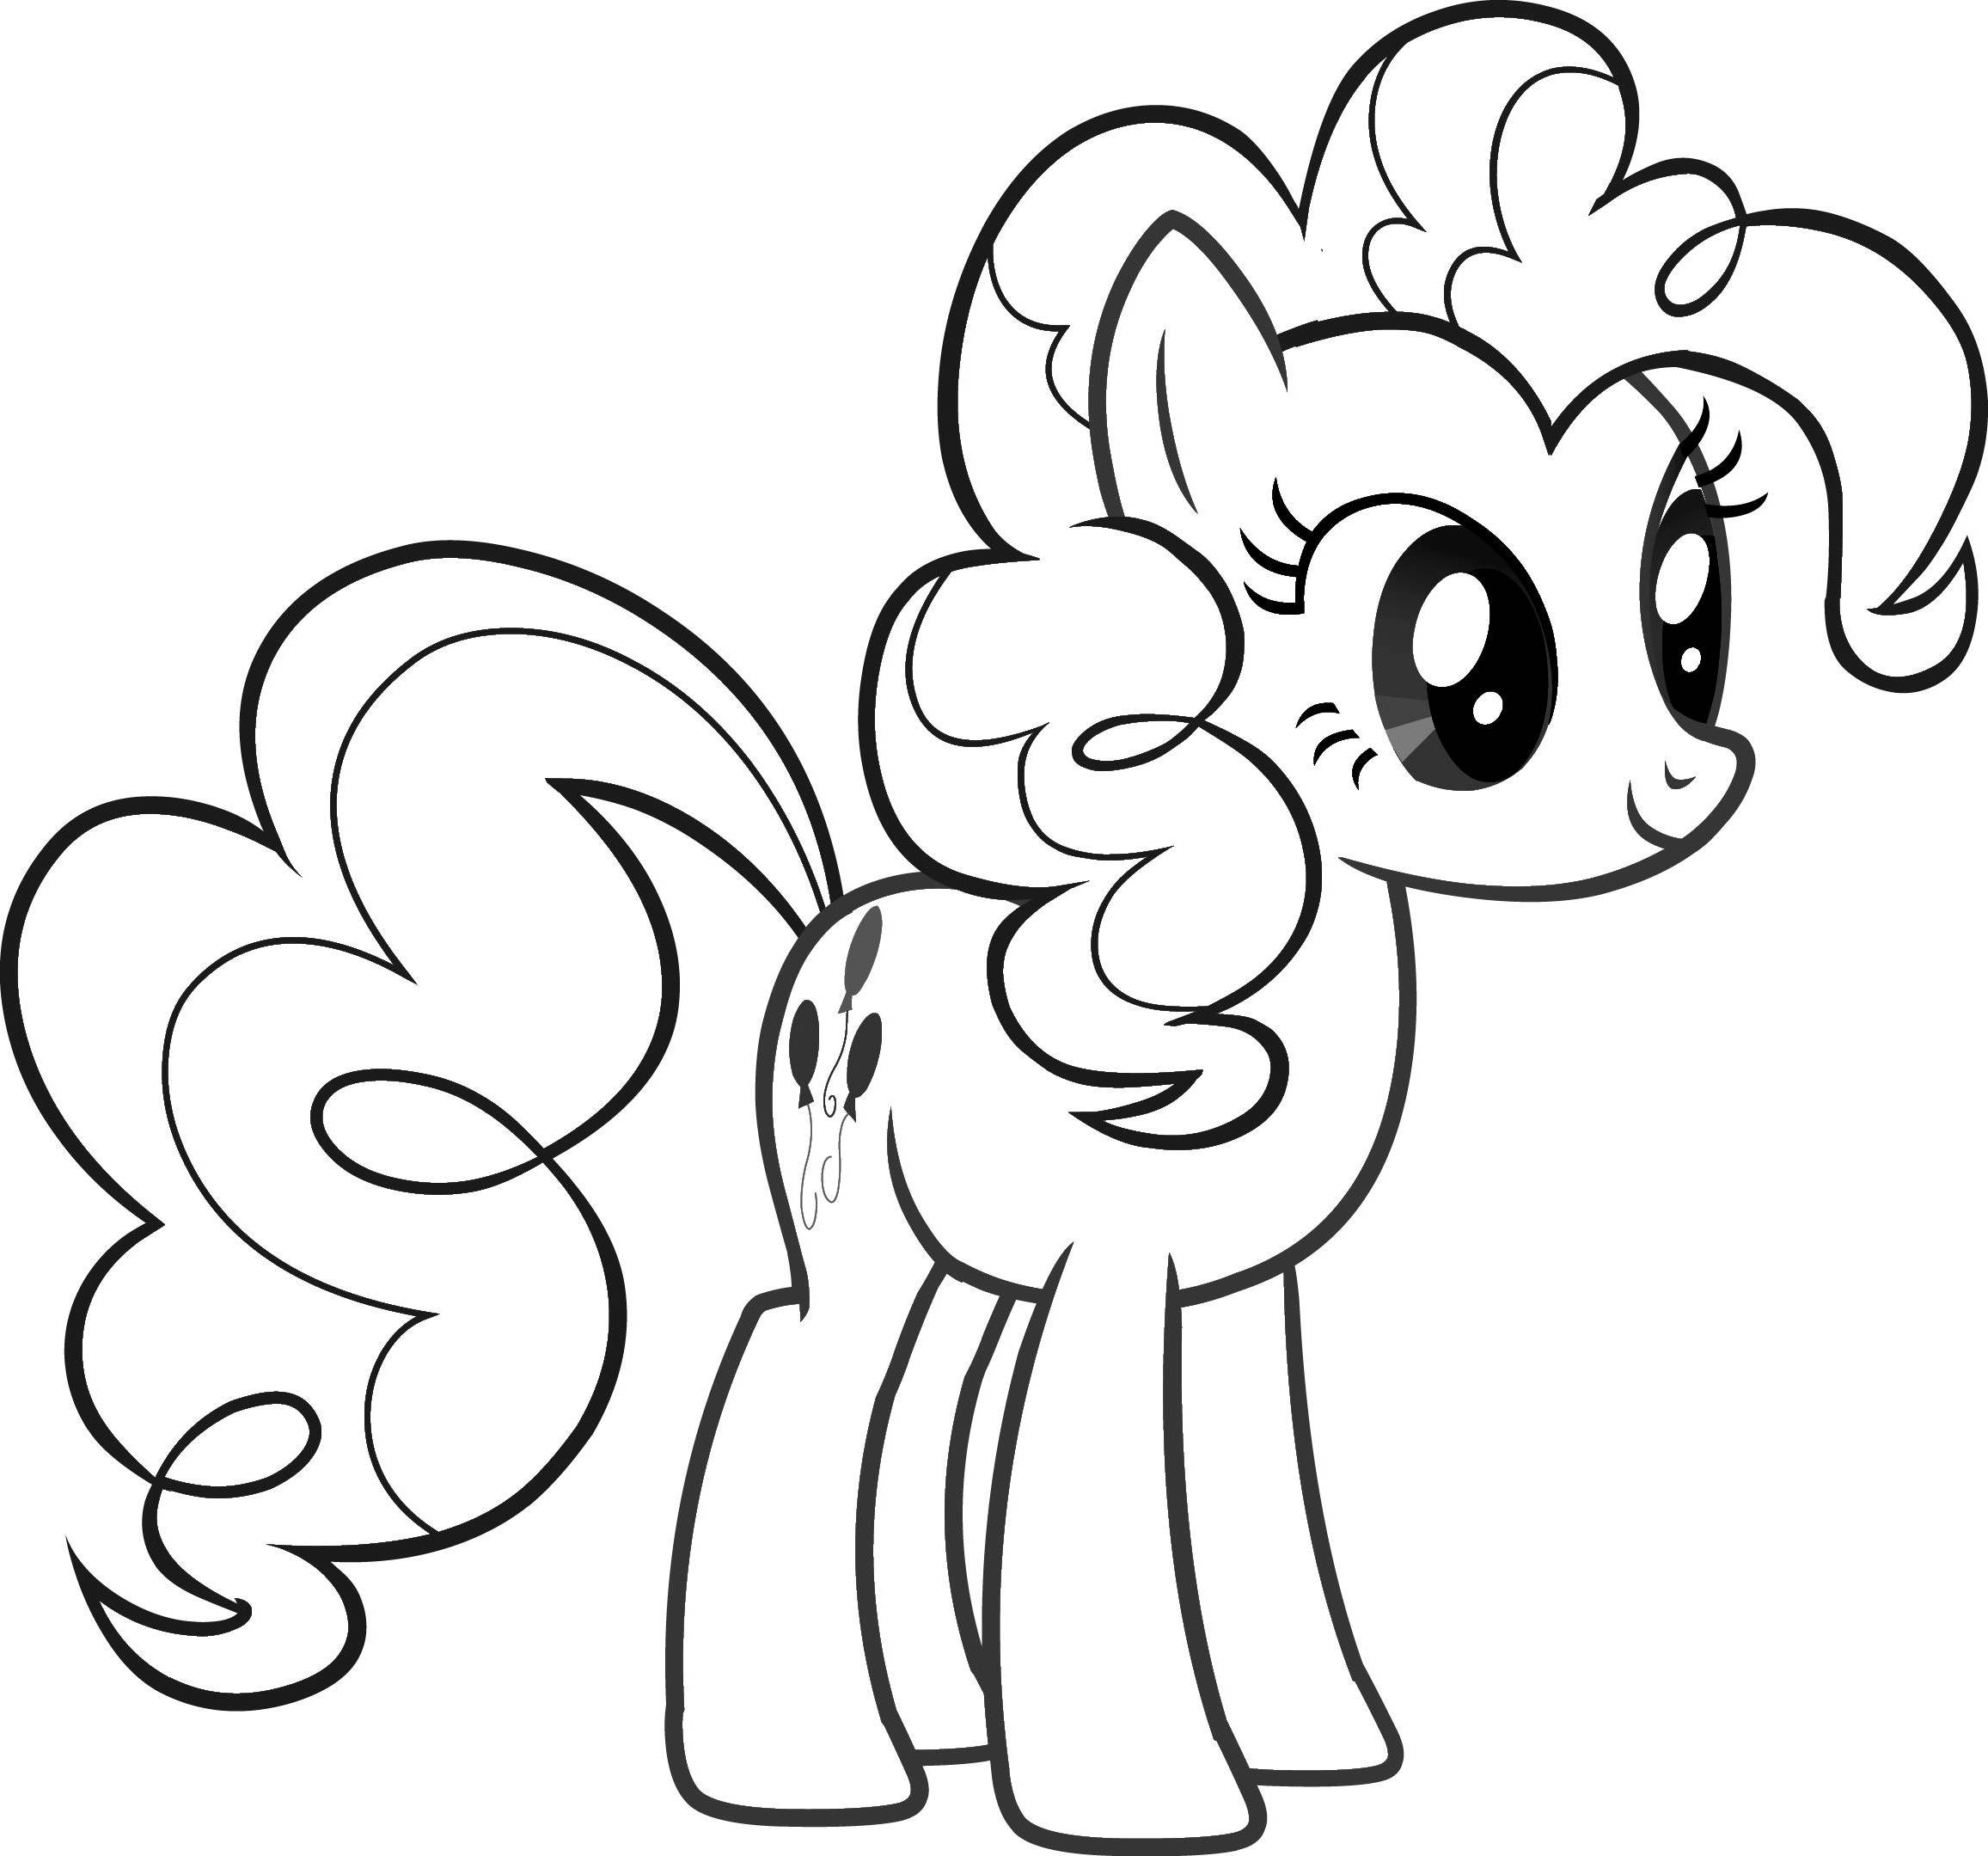 2313x2159 Cute Disney Coloring Pages To Download And Print For Free Page